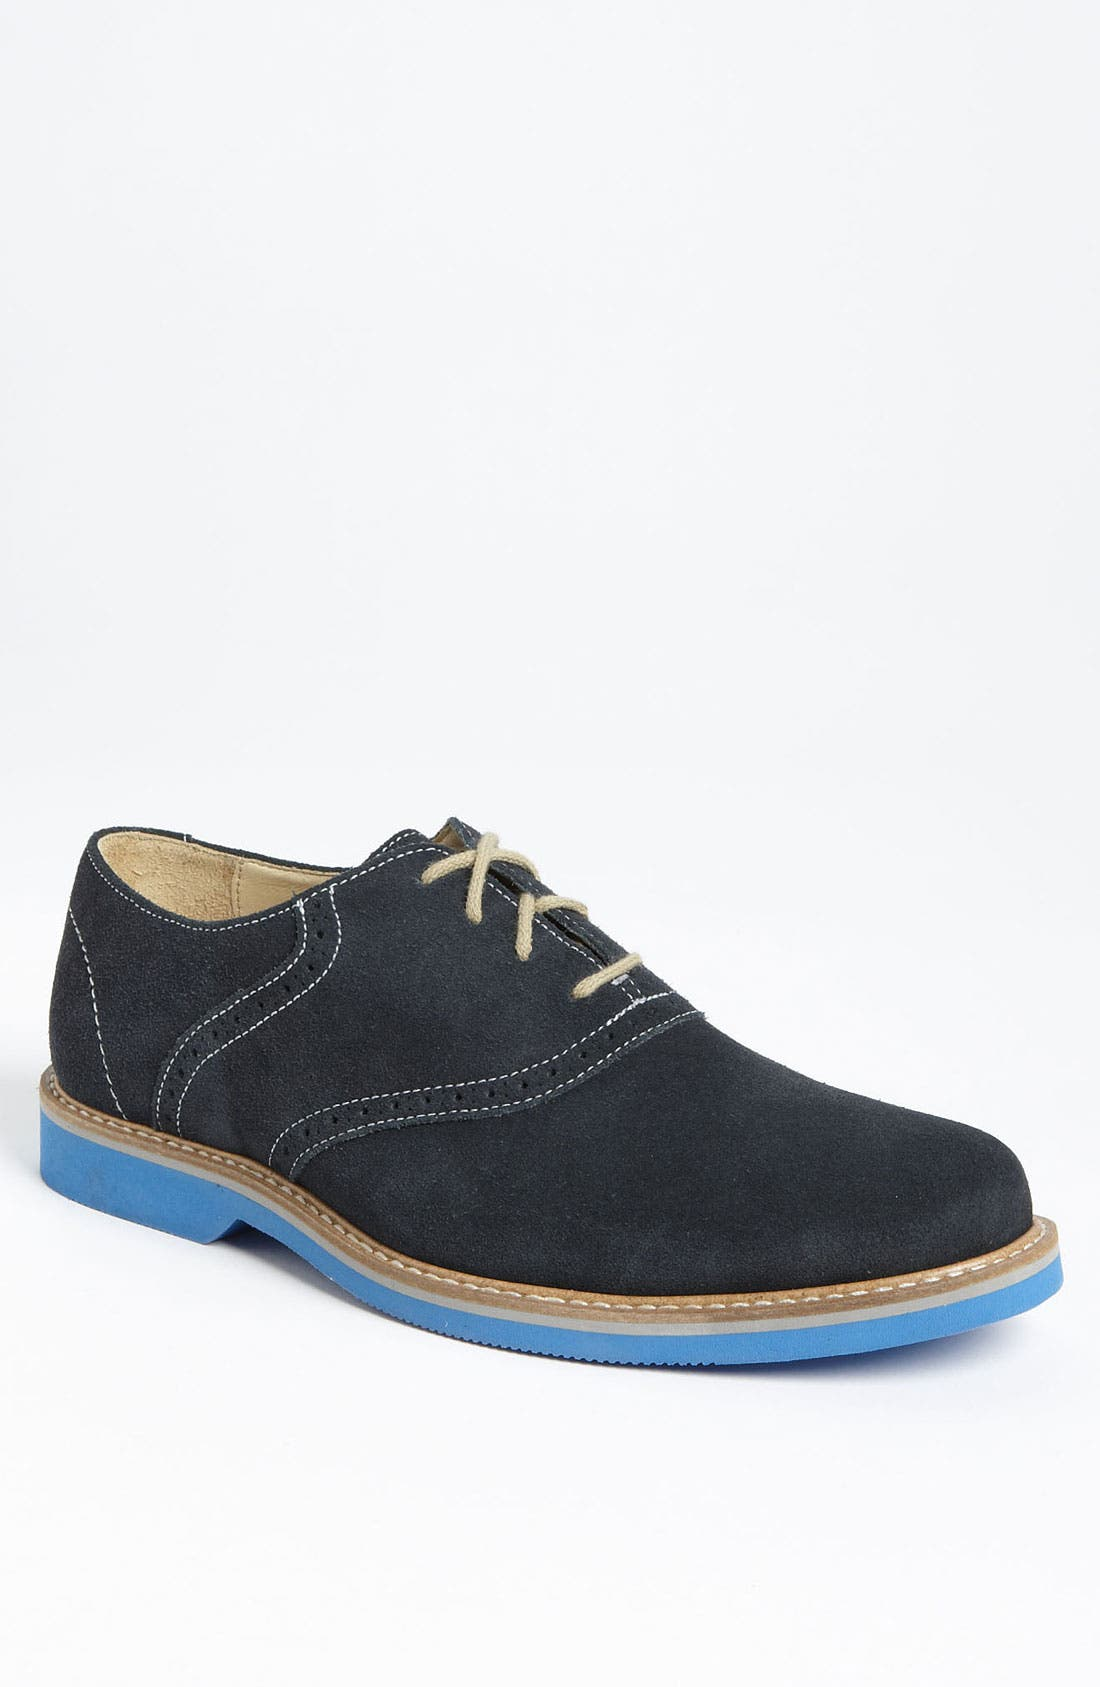 Alternate Image 1 Selected - 1901 'Saddle Up' Saddle Shoe (Men)